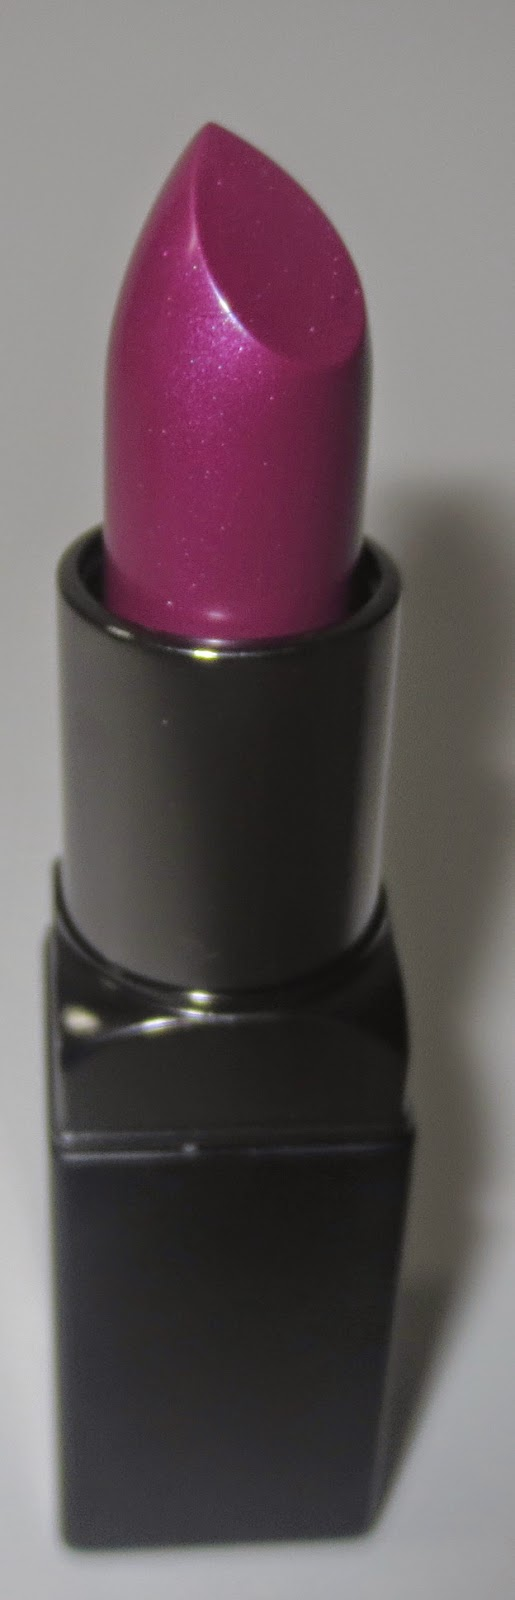 Smashbox Be Legendary Lipstick in Vivid Violet